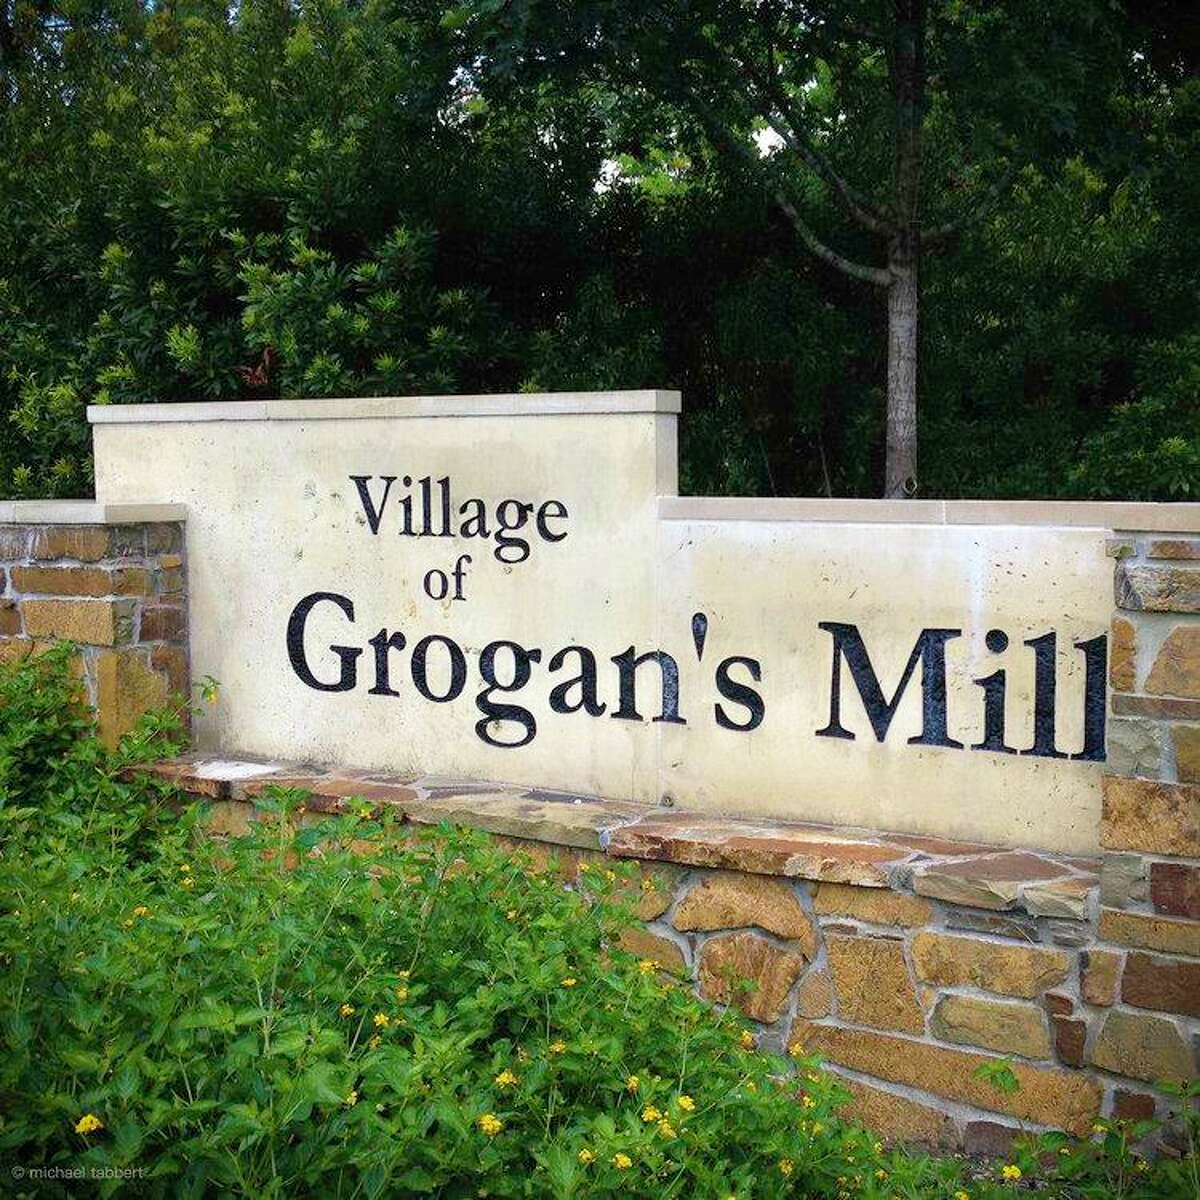 The Village of Grogan's Mill is the oldest village in The Woodlands. The community of 14,000 residents is also changing the fastest of any of the township's nine villages. From old home tear-downs and rebuilds to the downward slide of the village's shopping center, Grogan's Mill is transforming by the month.